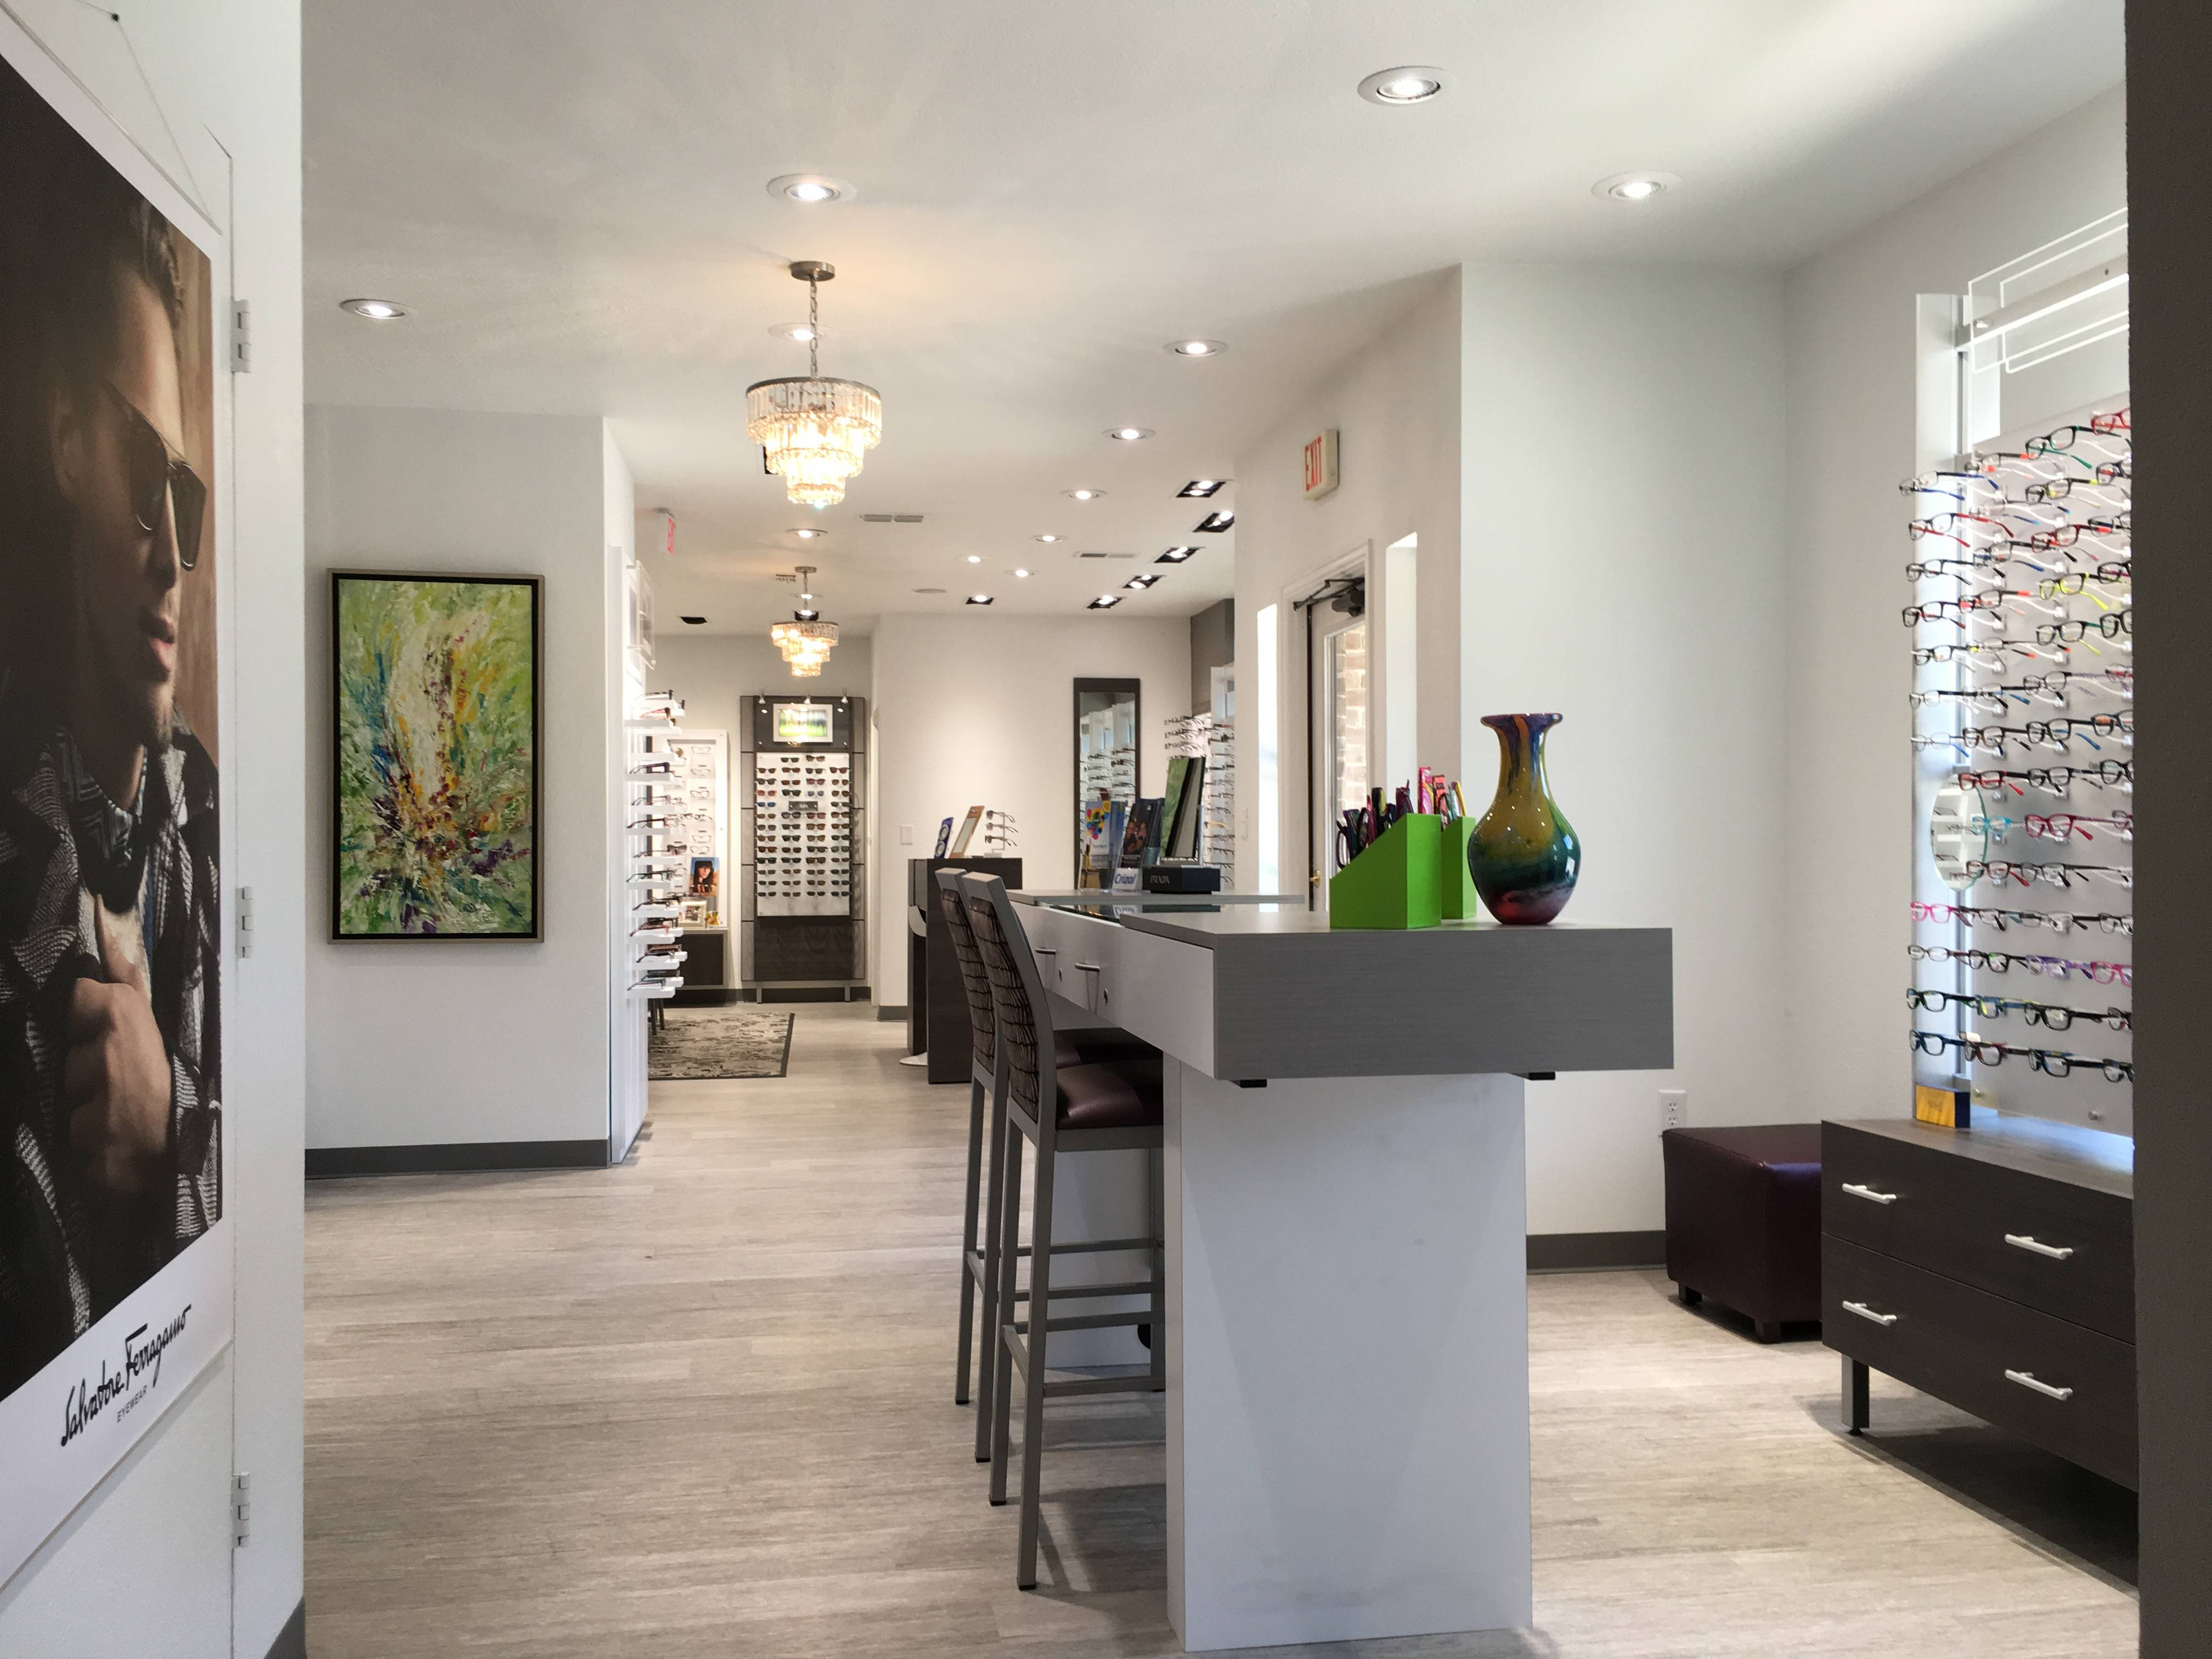 Chic Contemporary Spaces Rendered By Anh Nguyen: Welcome To EyeCare Of Denton